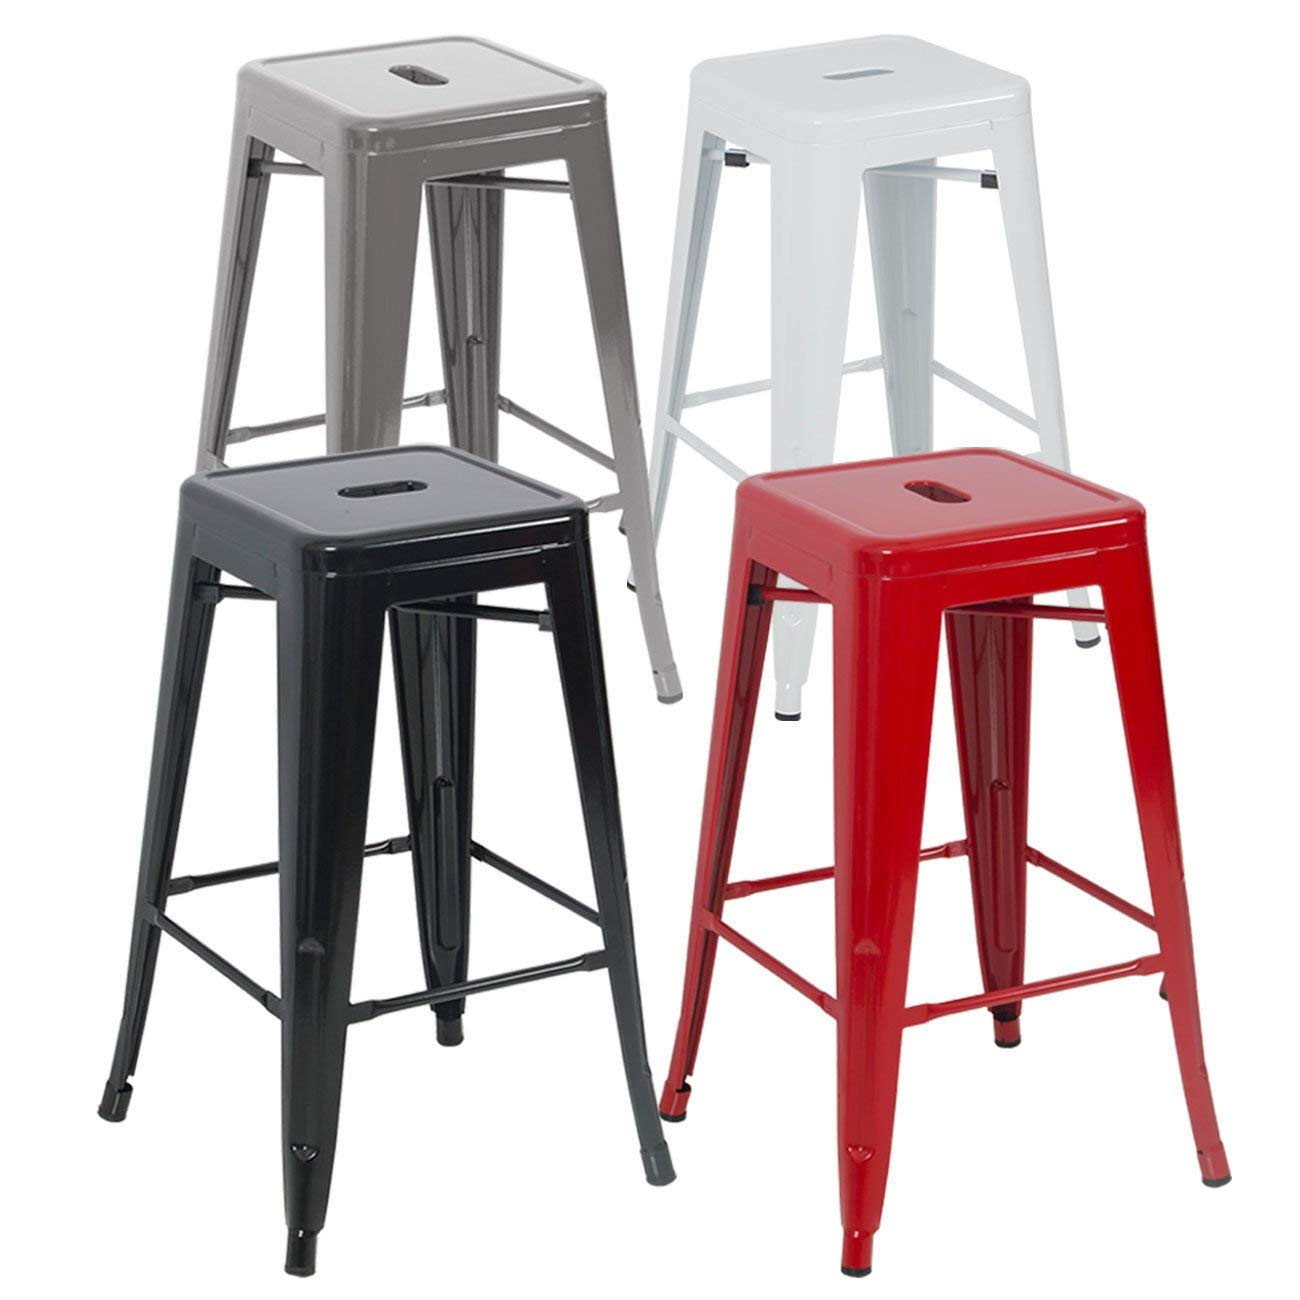 Globe House Products GHP 6-Pcs 330-Lbs Capacicty White Steel Scratch & Mar Resistant Stackable Bar Stools